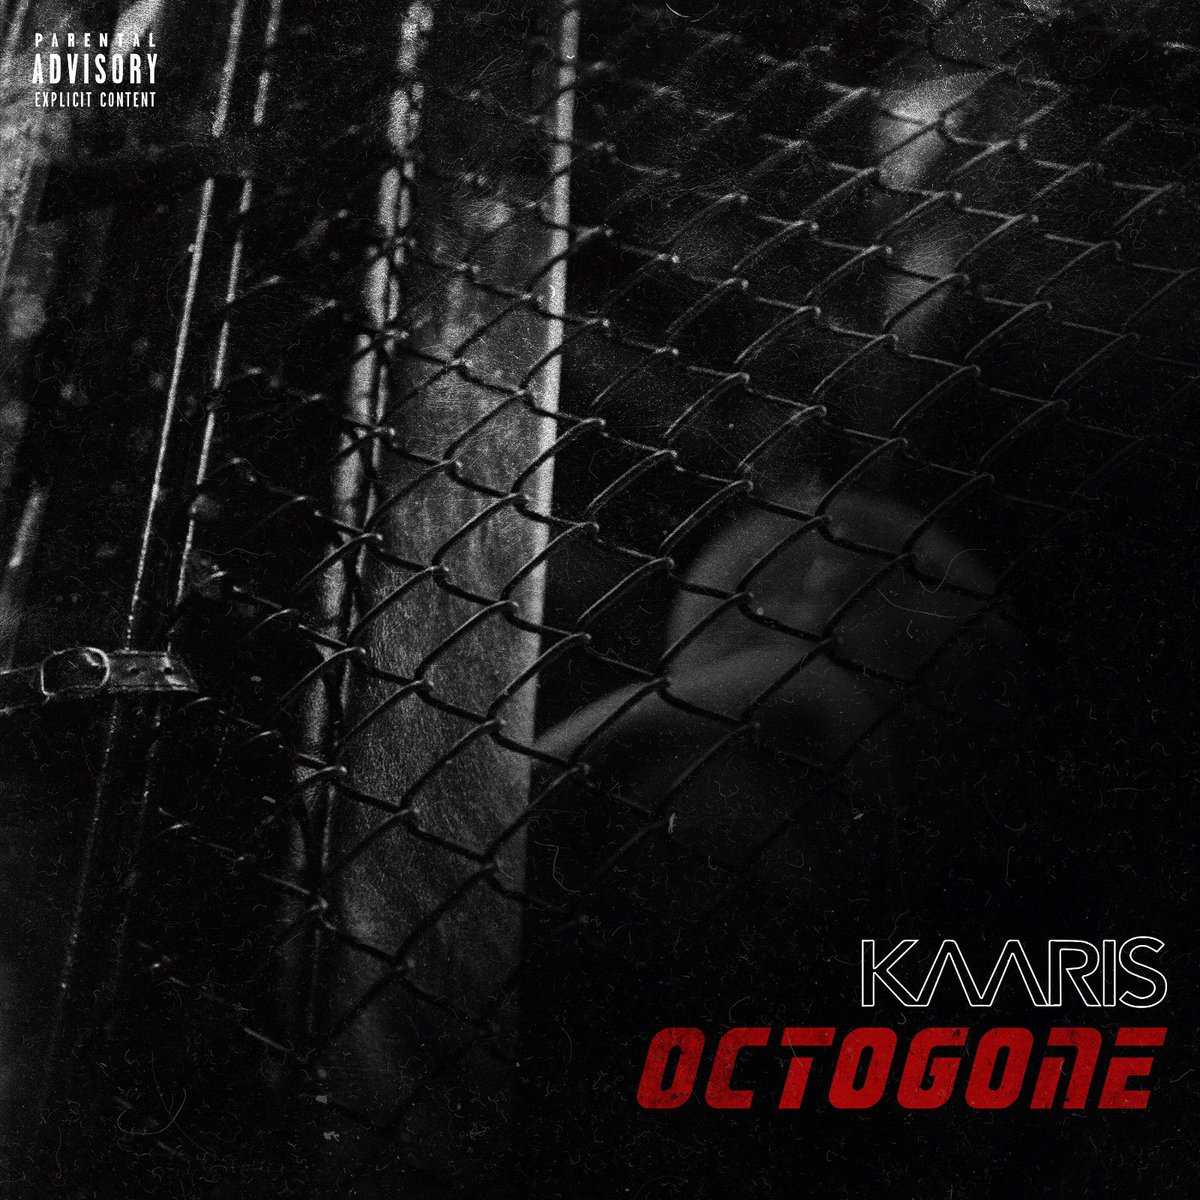 image kaaris octogone son